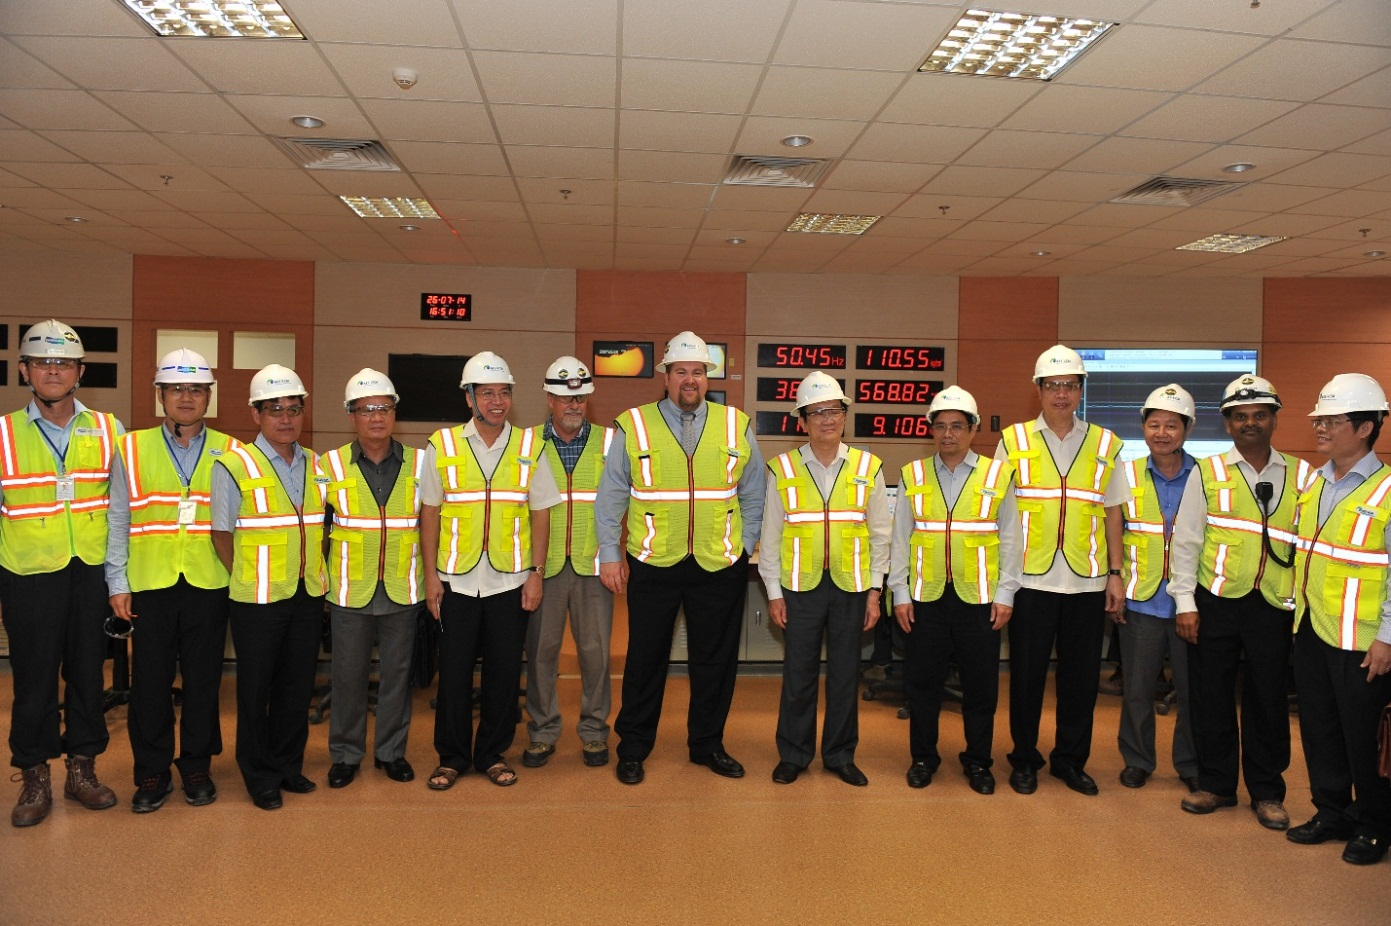 President Truong Tan Sang visited the Central Control Room of the Plant